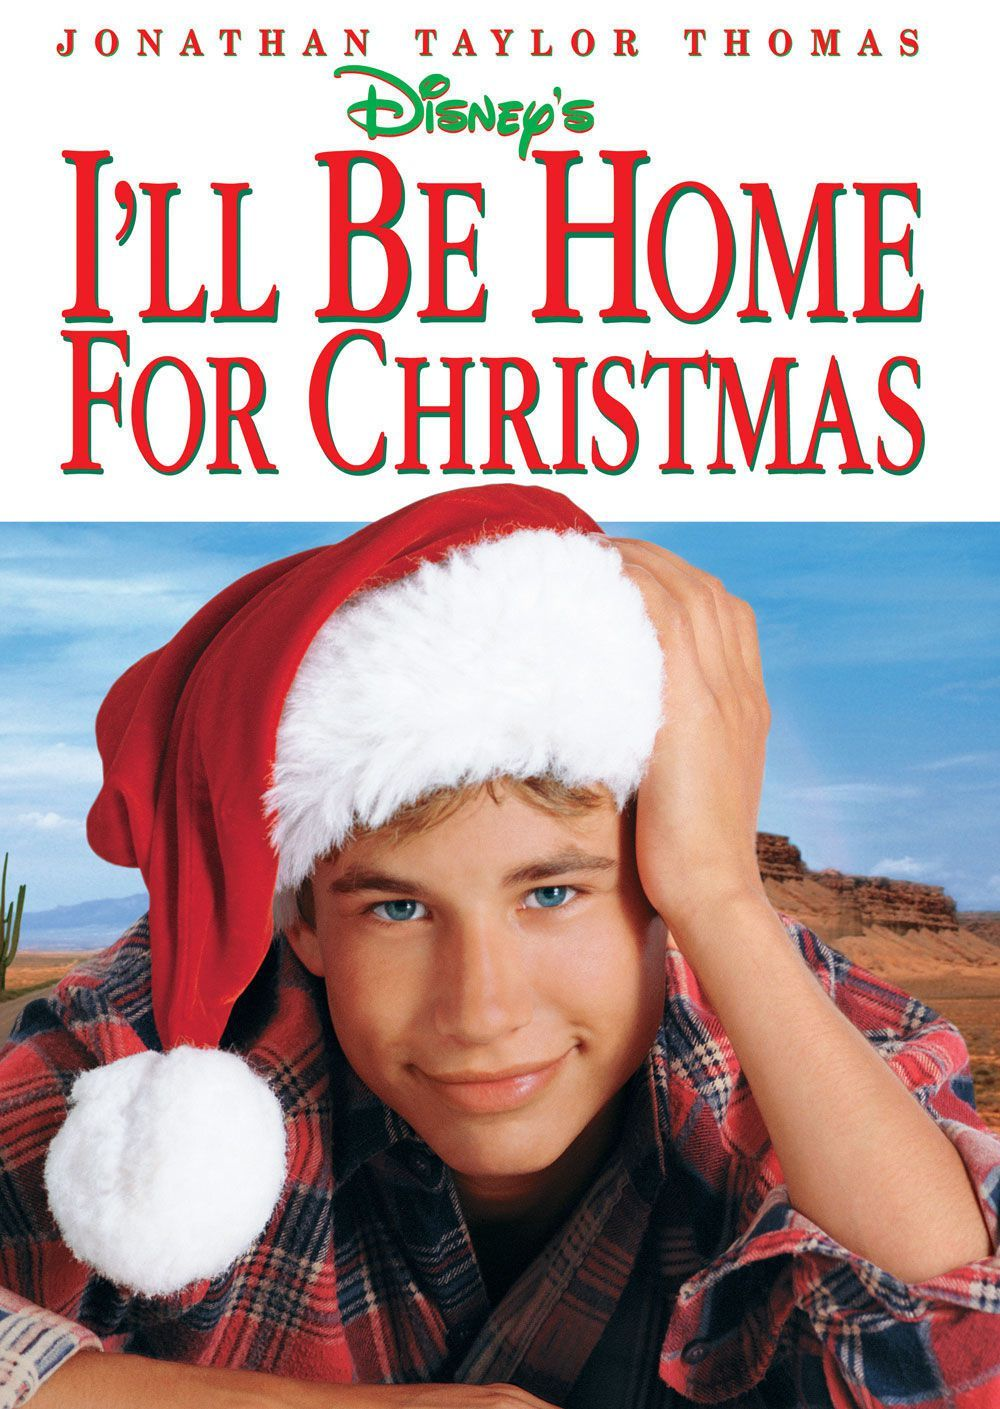 30 Best Christmas Movies For Kids - Family Christmas Films for the ...